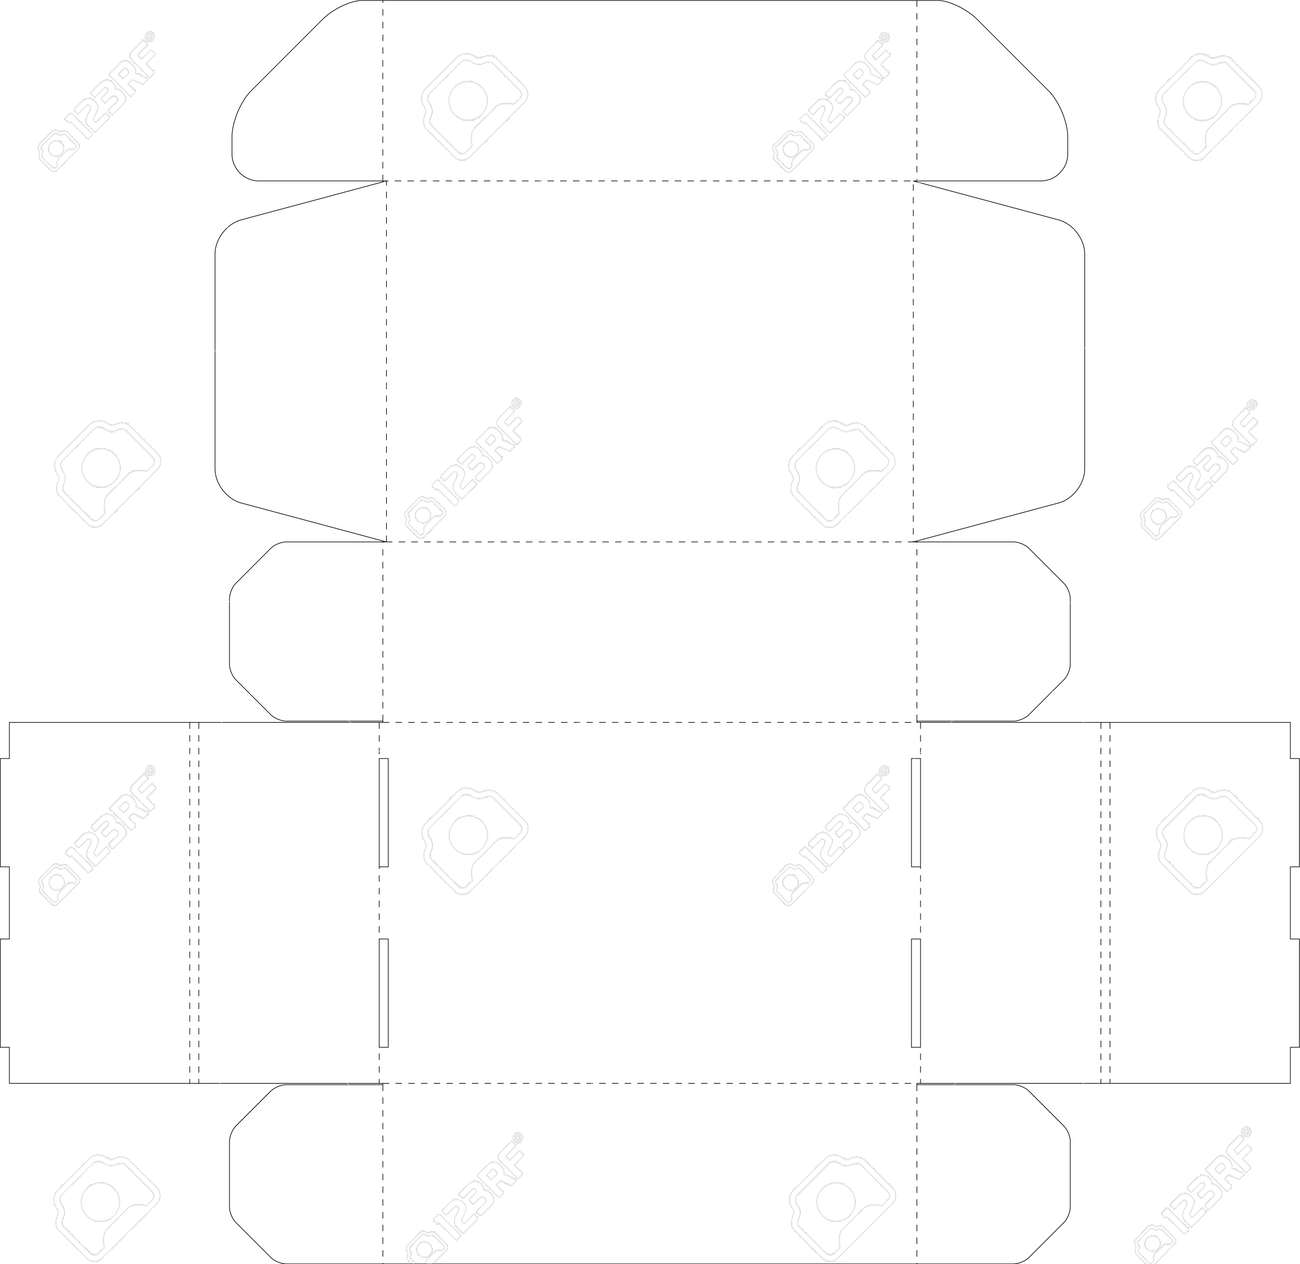 Cardboard Box Template Royalty Free Cliparts, Vectors, And Stock ...